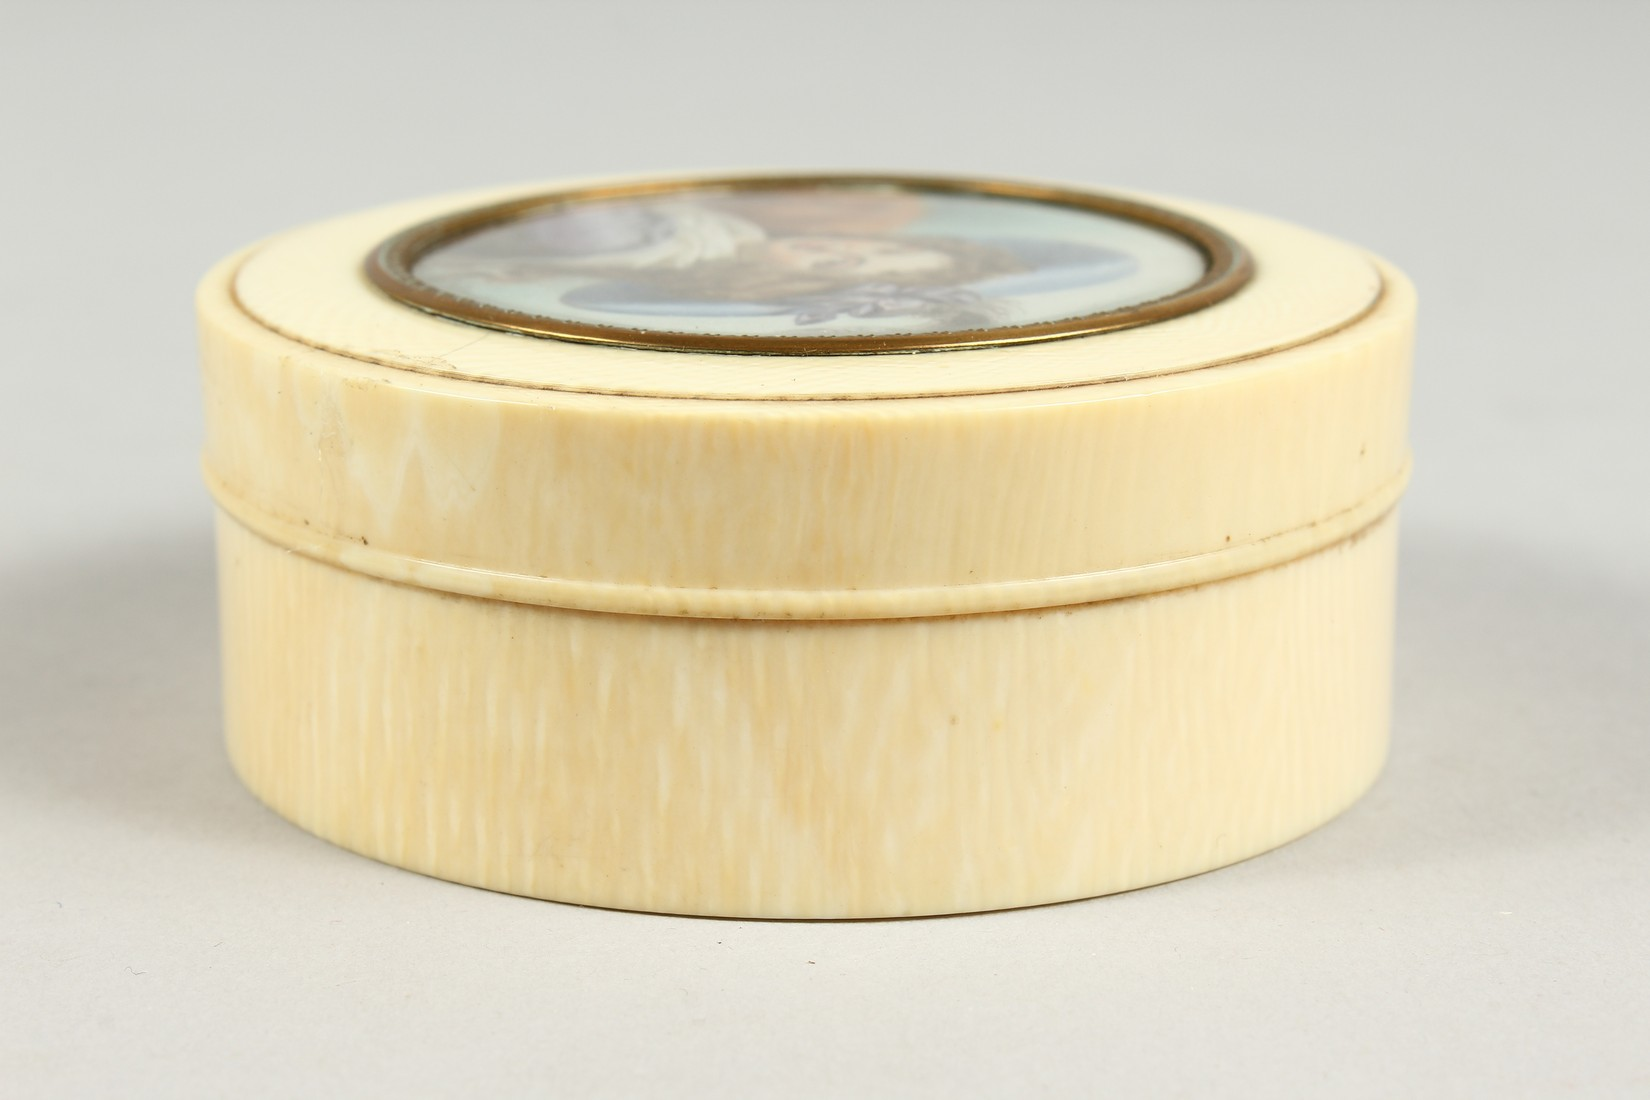 A GEORGIAN IVORY CIRCULAR BOX, the top painted with a portrait of a young lady in a plumed hat. 3ins - Image 5 of 8